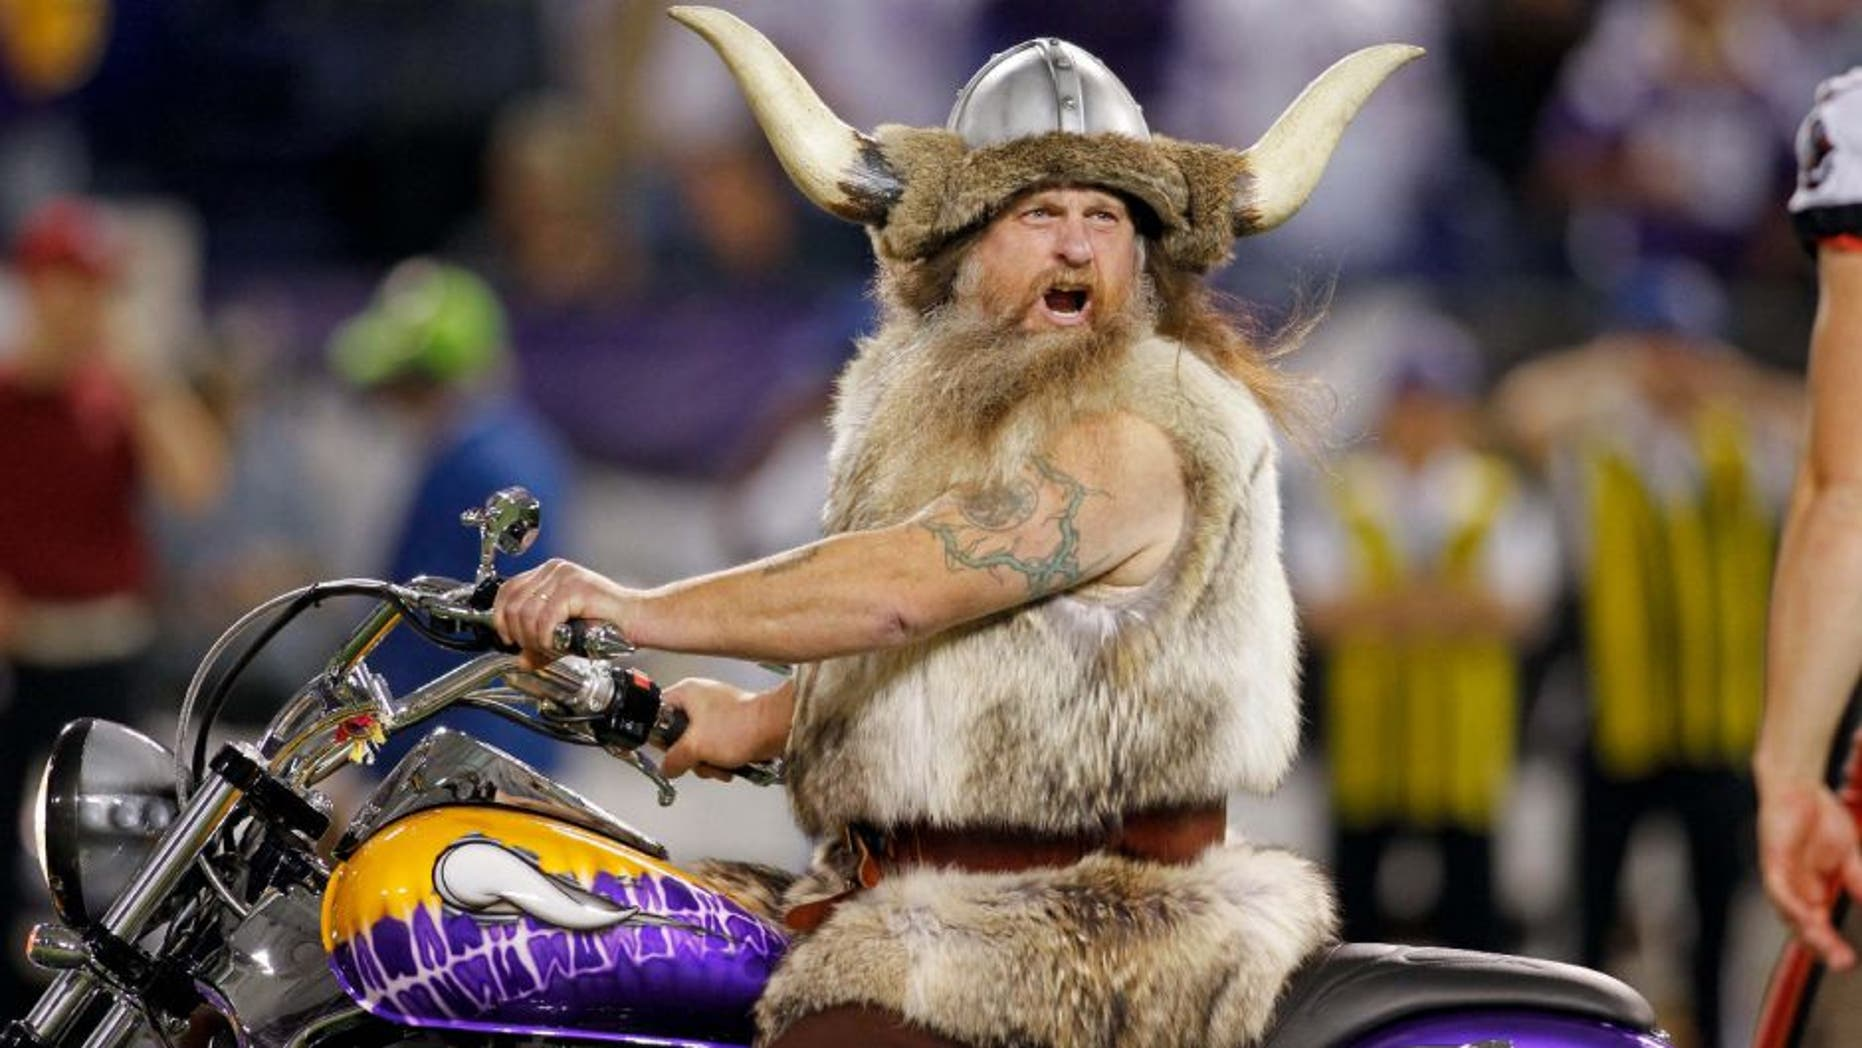 Oct 25, 2012; Minneapolis, MN, USA; Minnesota Vikings mascot Ragnar yells at a player from the Tampa Bay Buccaneers as he goes onto the field and leads the Vikings before the game at the Metrodome. The Buccaneers win 36-17. Mandatory Credit: Bruce Kluckhohn-USA TODAY Sports